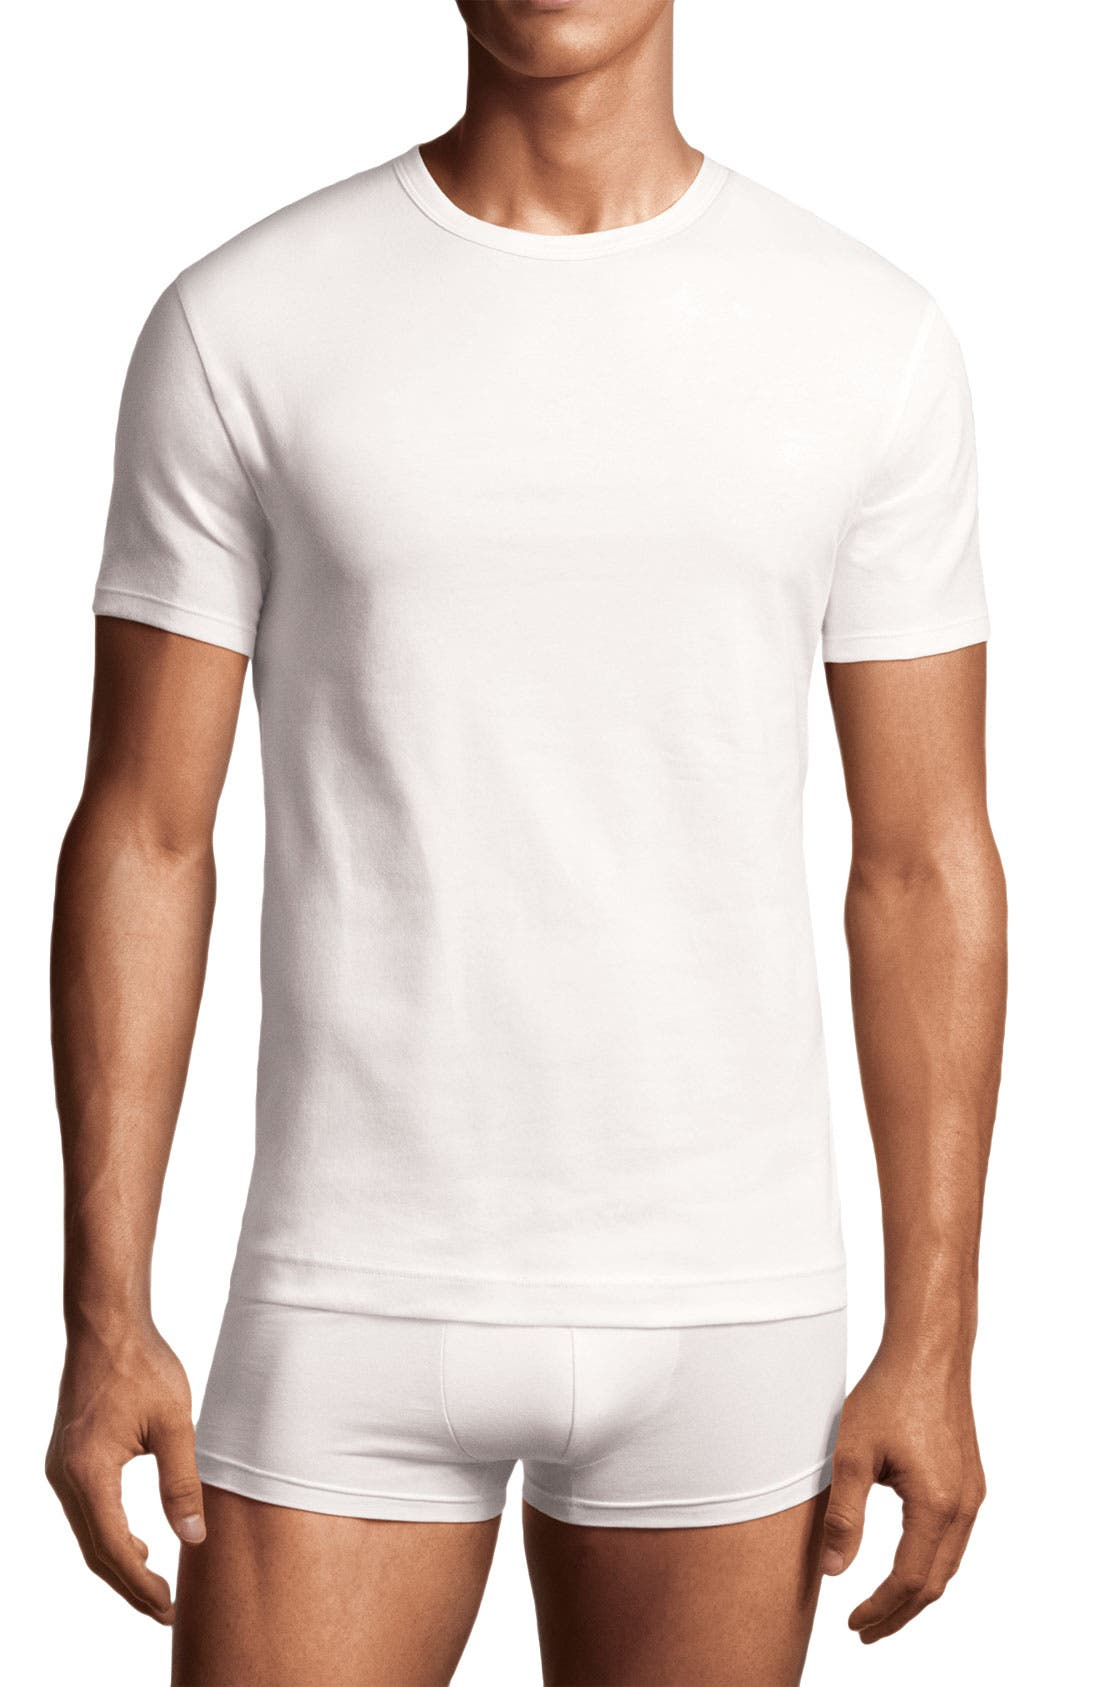 Alternate Image 1 Selected - Calvin Klein 'U2668' Stretch Cotton Crewneck T-Shirt (2-Pack)